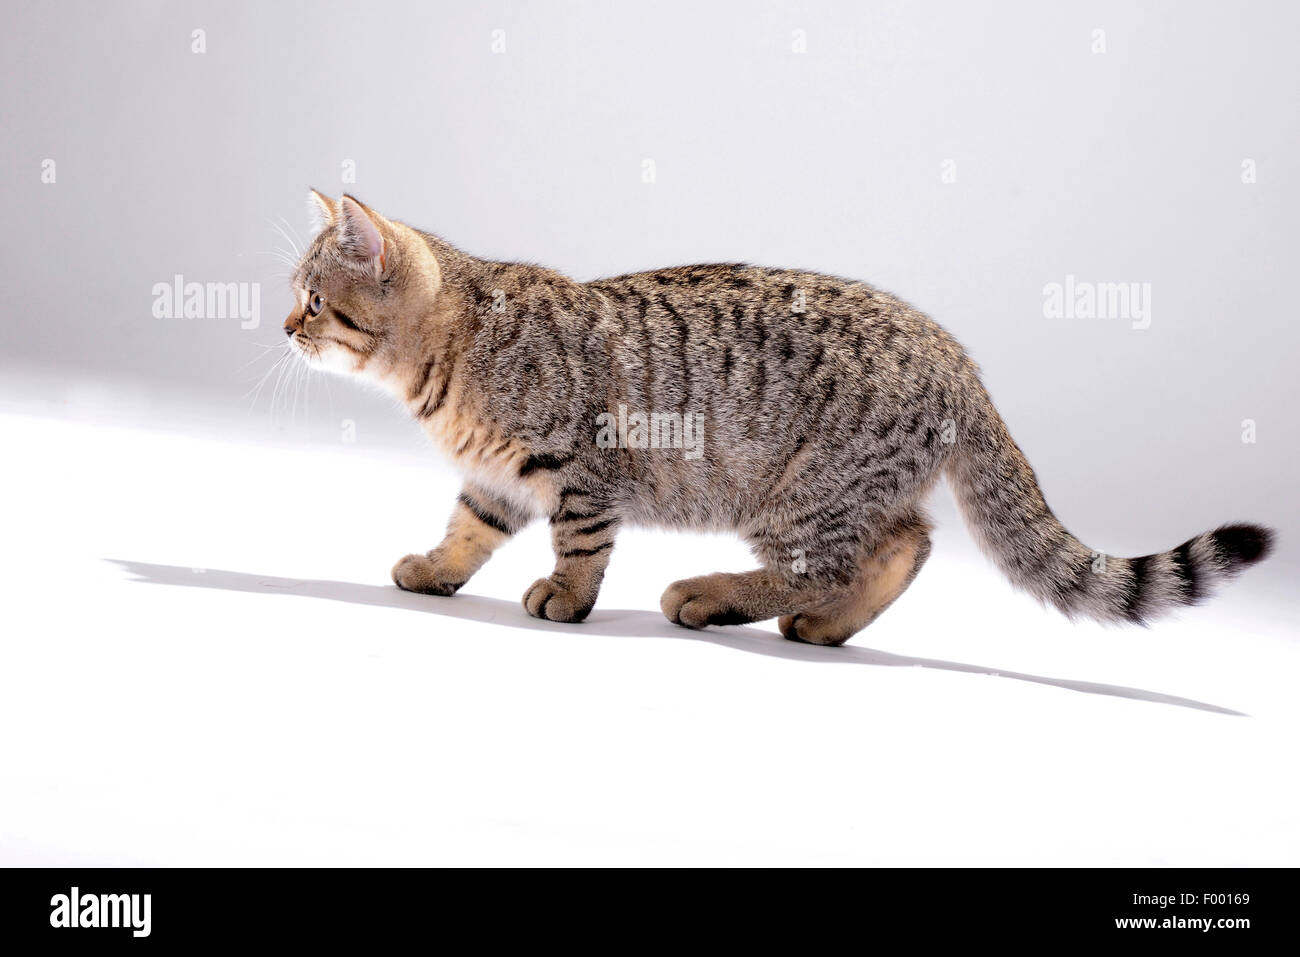 British Shorthair (Felis silvestris f. catus), little striped kitten, side view - Stock Image